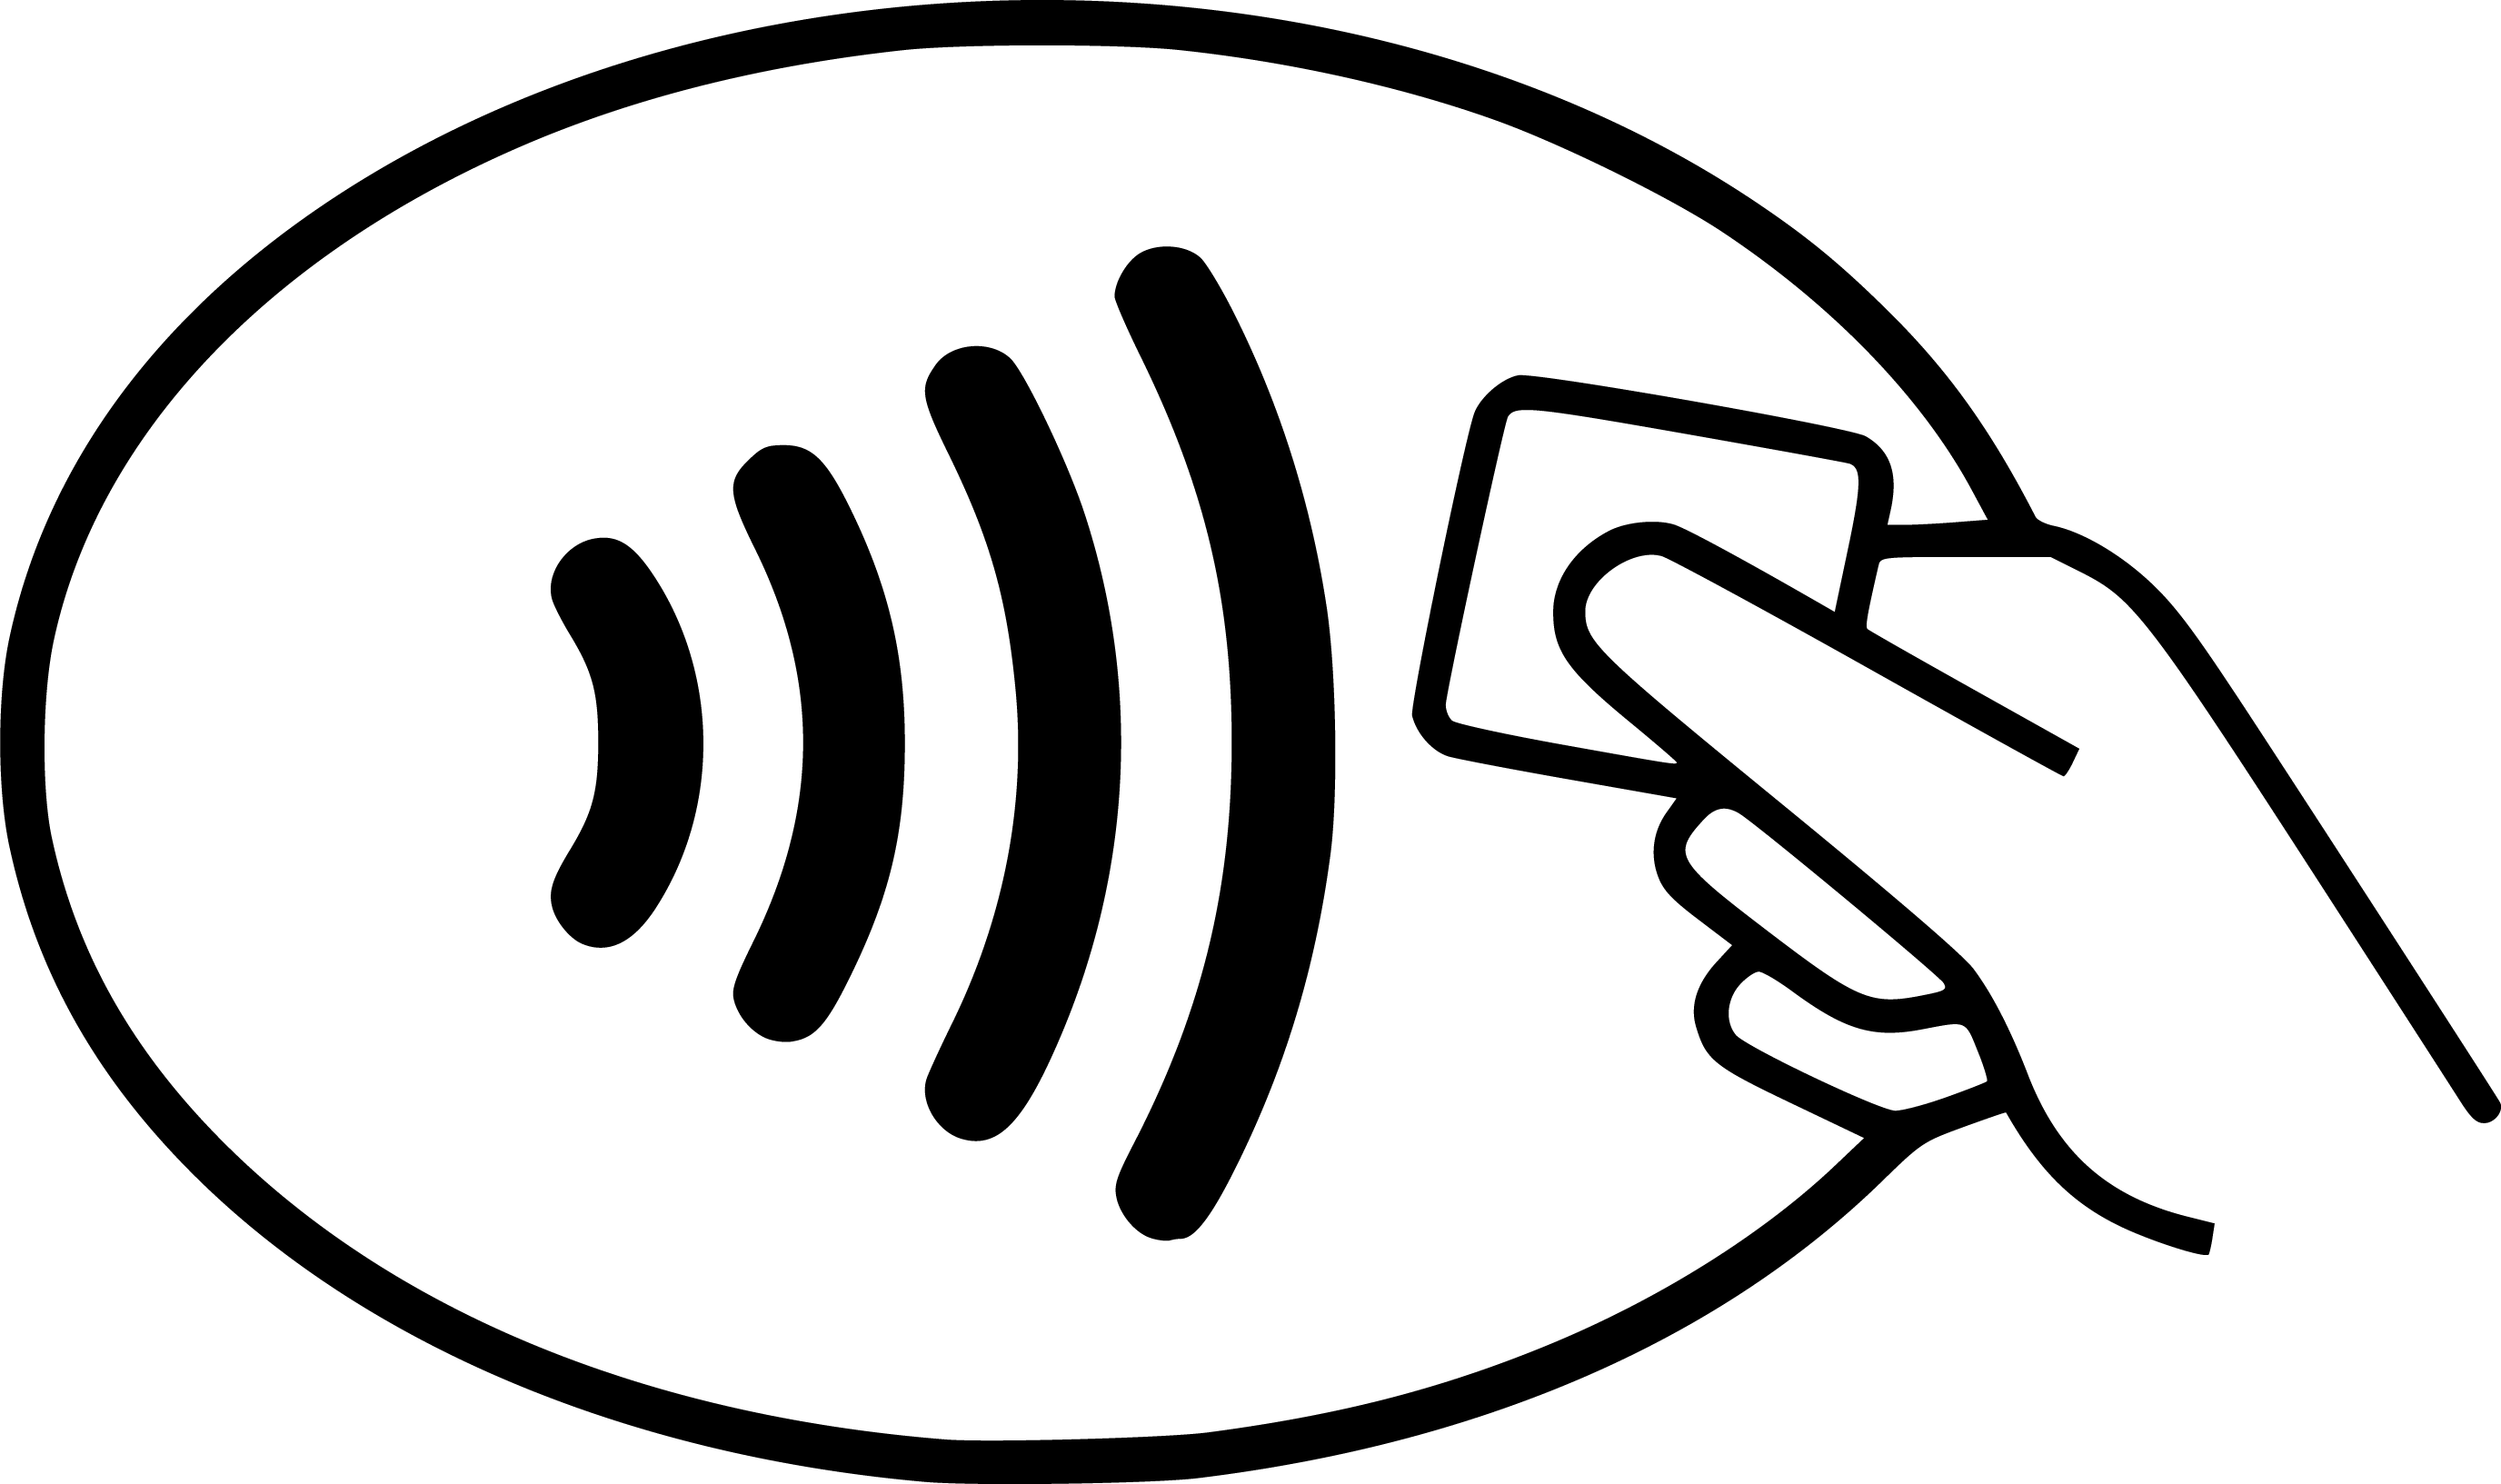 contactless-pay-symbol